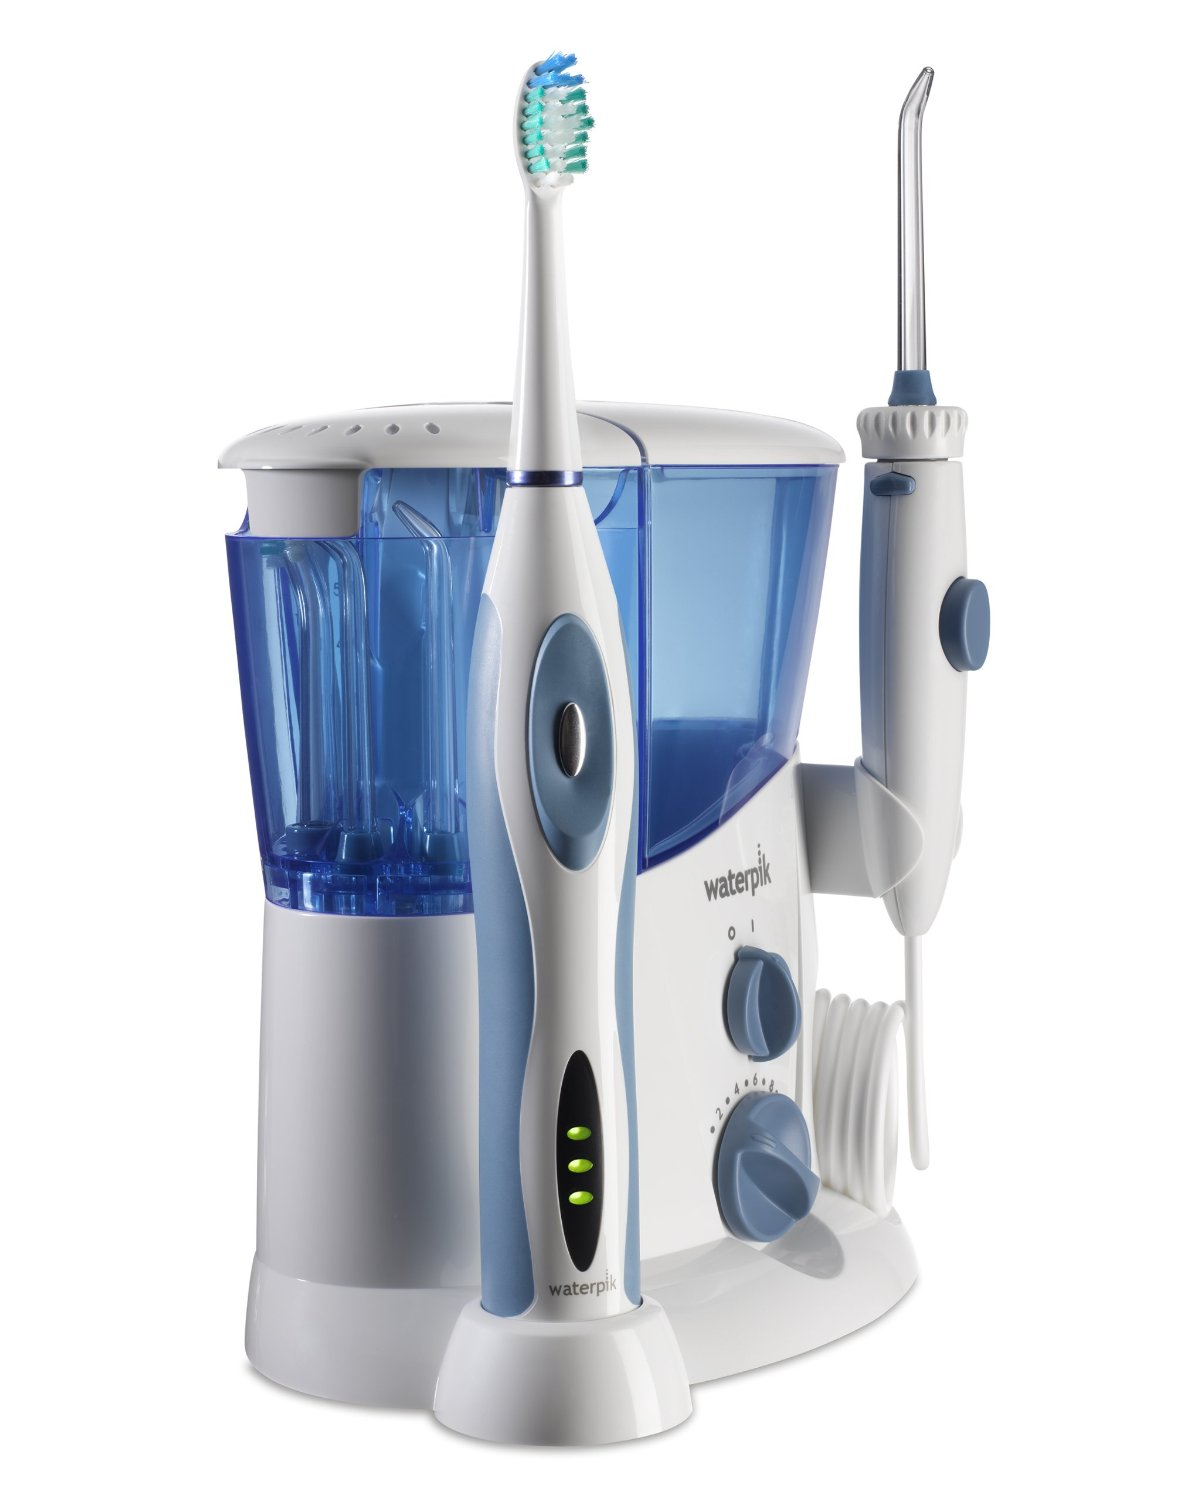 Waterpik Complete Care Water Flosser